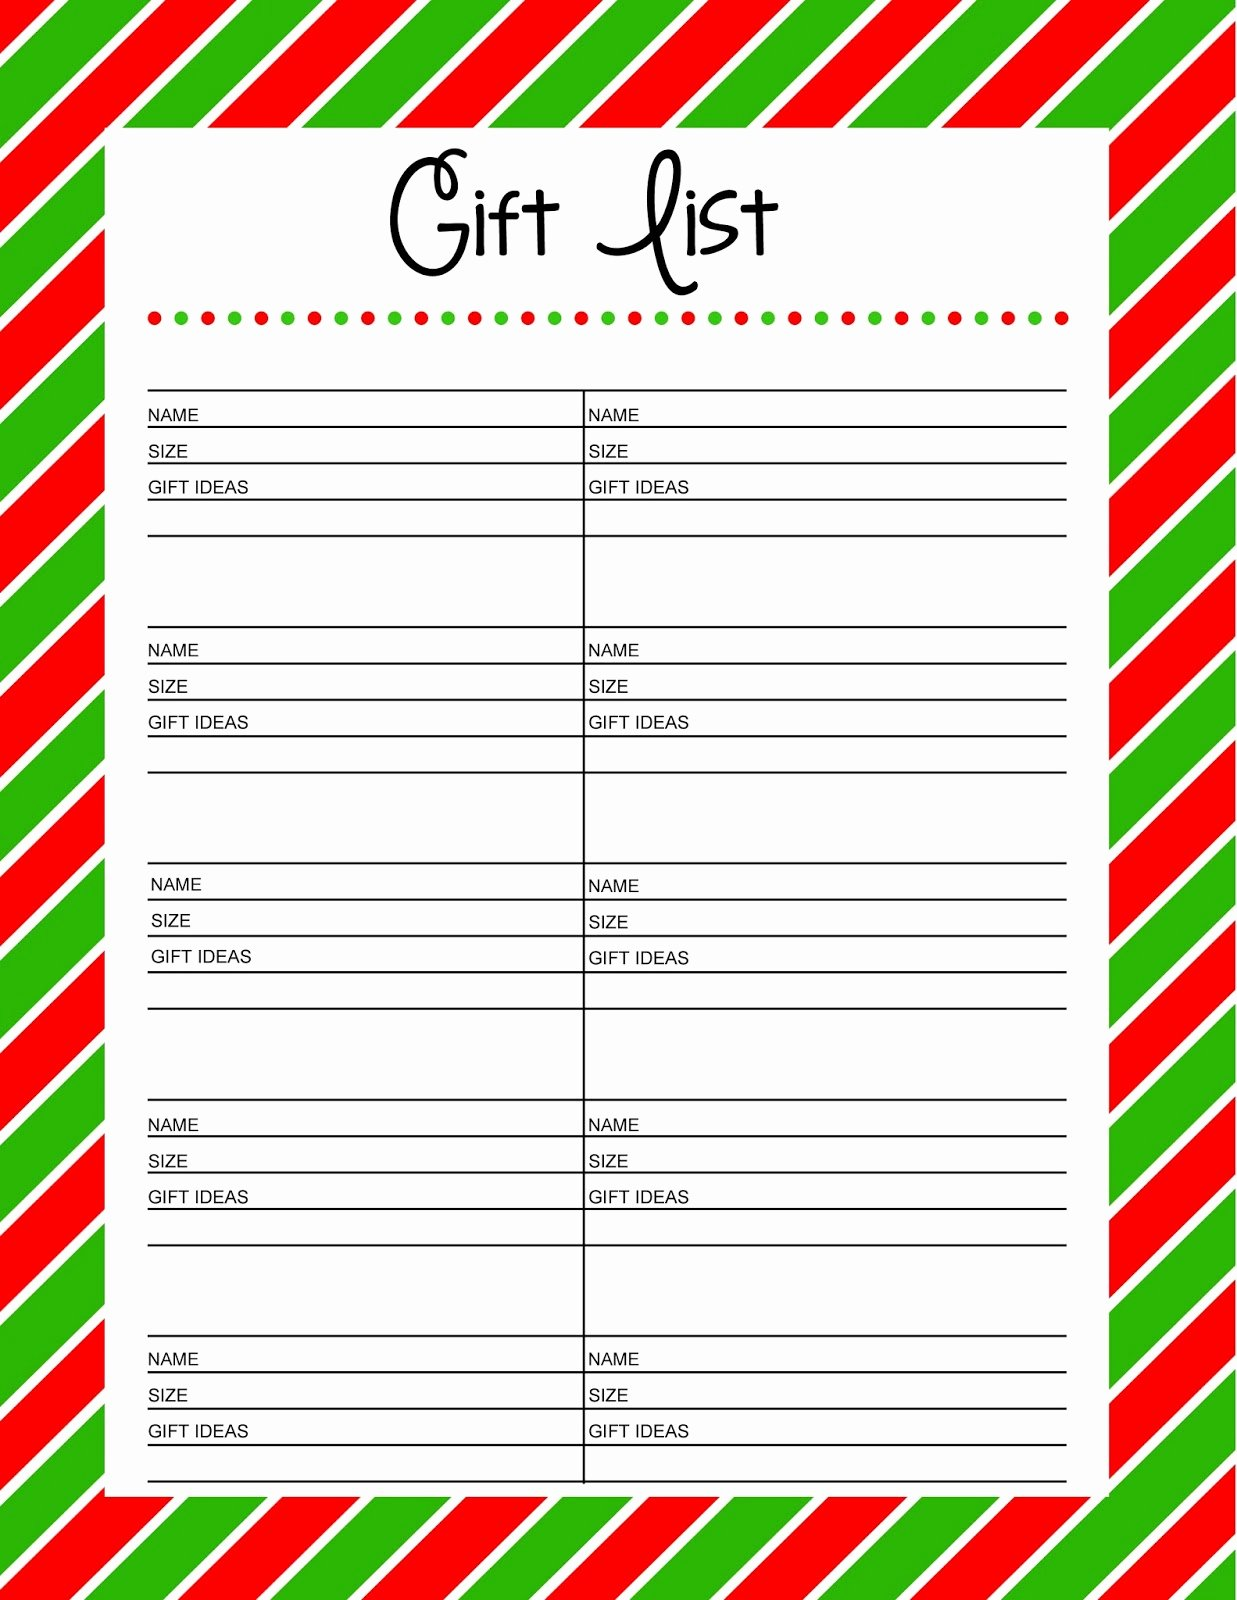 Gift Exchange Wish List Template Luxury Free Printable Gift List 25 Days to An organized